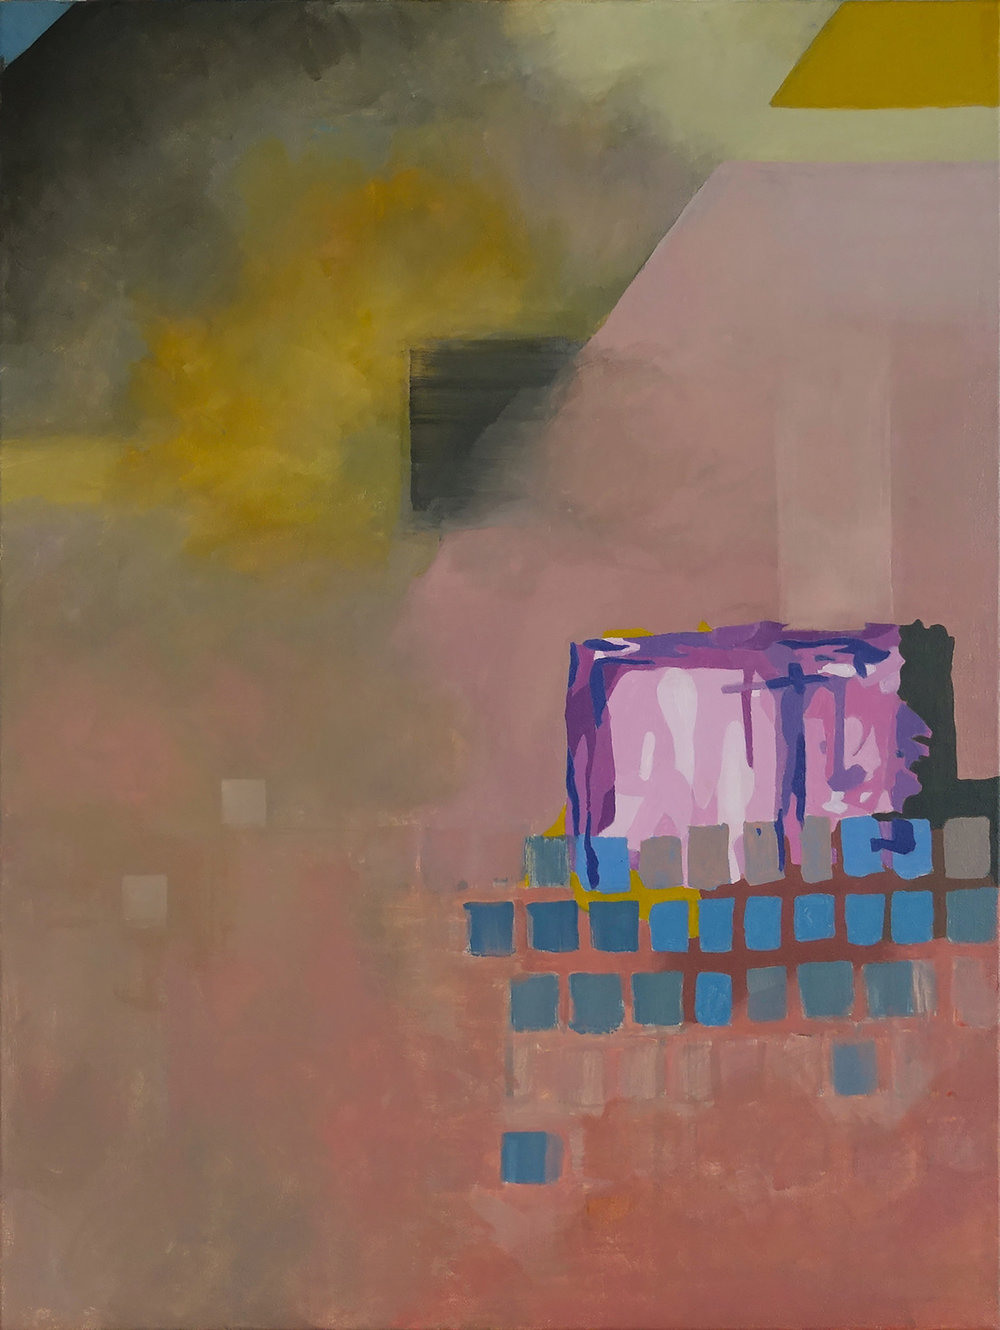 Untitled (Pink Square), 2017